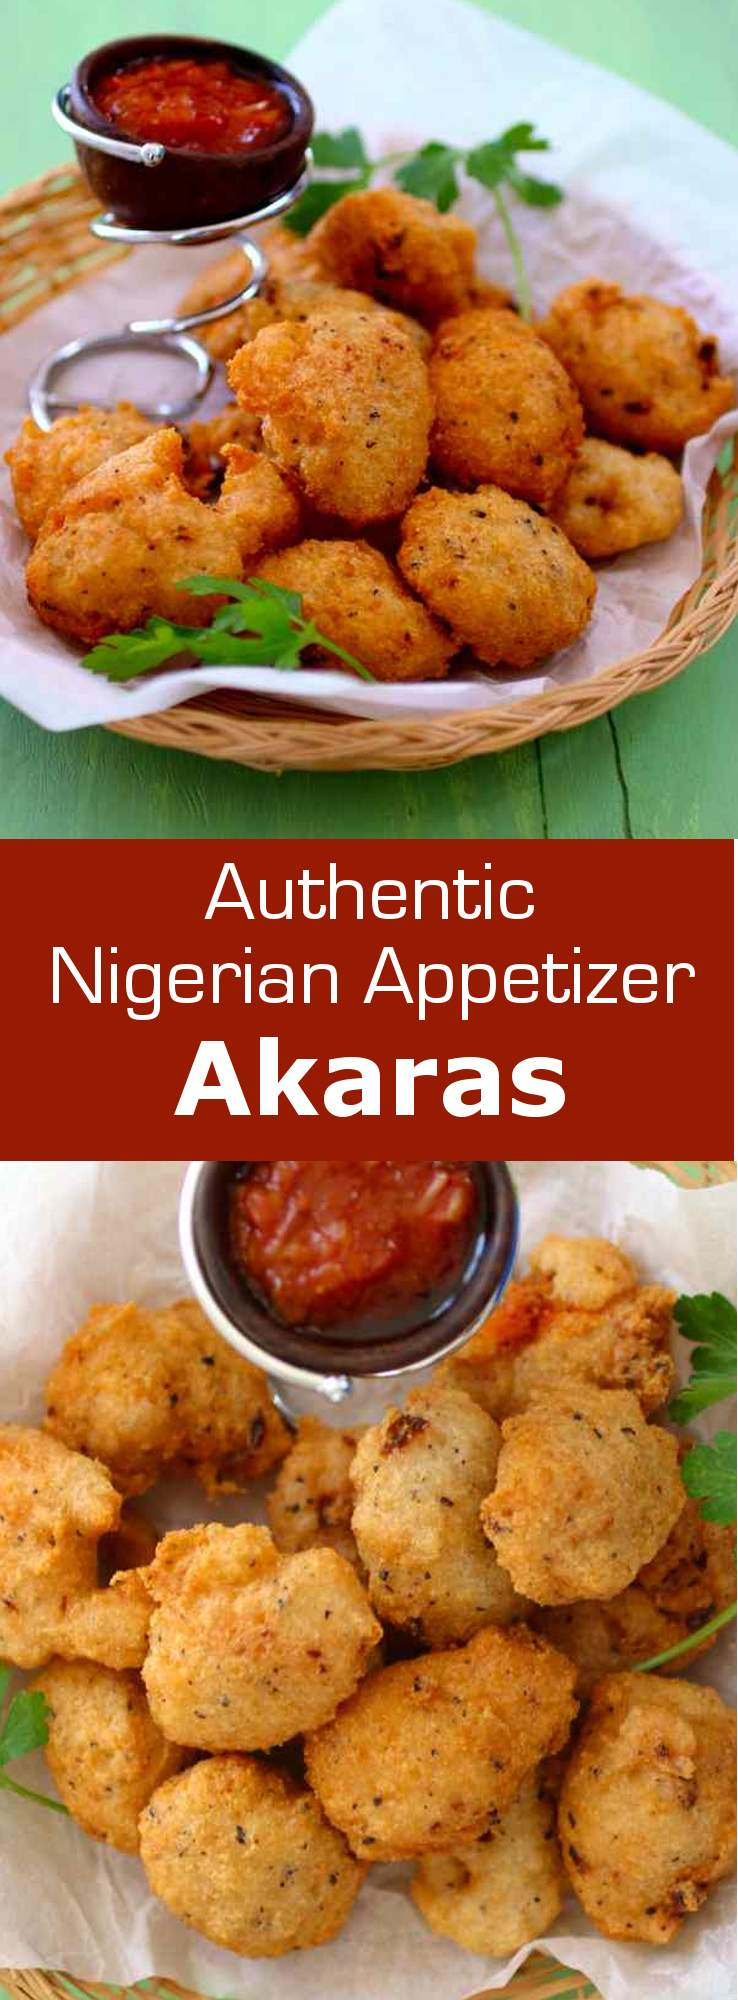 Akara is a delicious fried snack composed of black-eyed peas originally from Nigeria, but also popular throughout West Africa and Brazil. #Nigeria #WestAfrica #snack #appetizer #vegan #glutenfree #196flavors